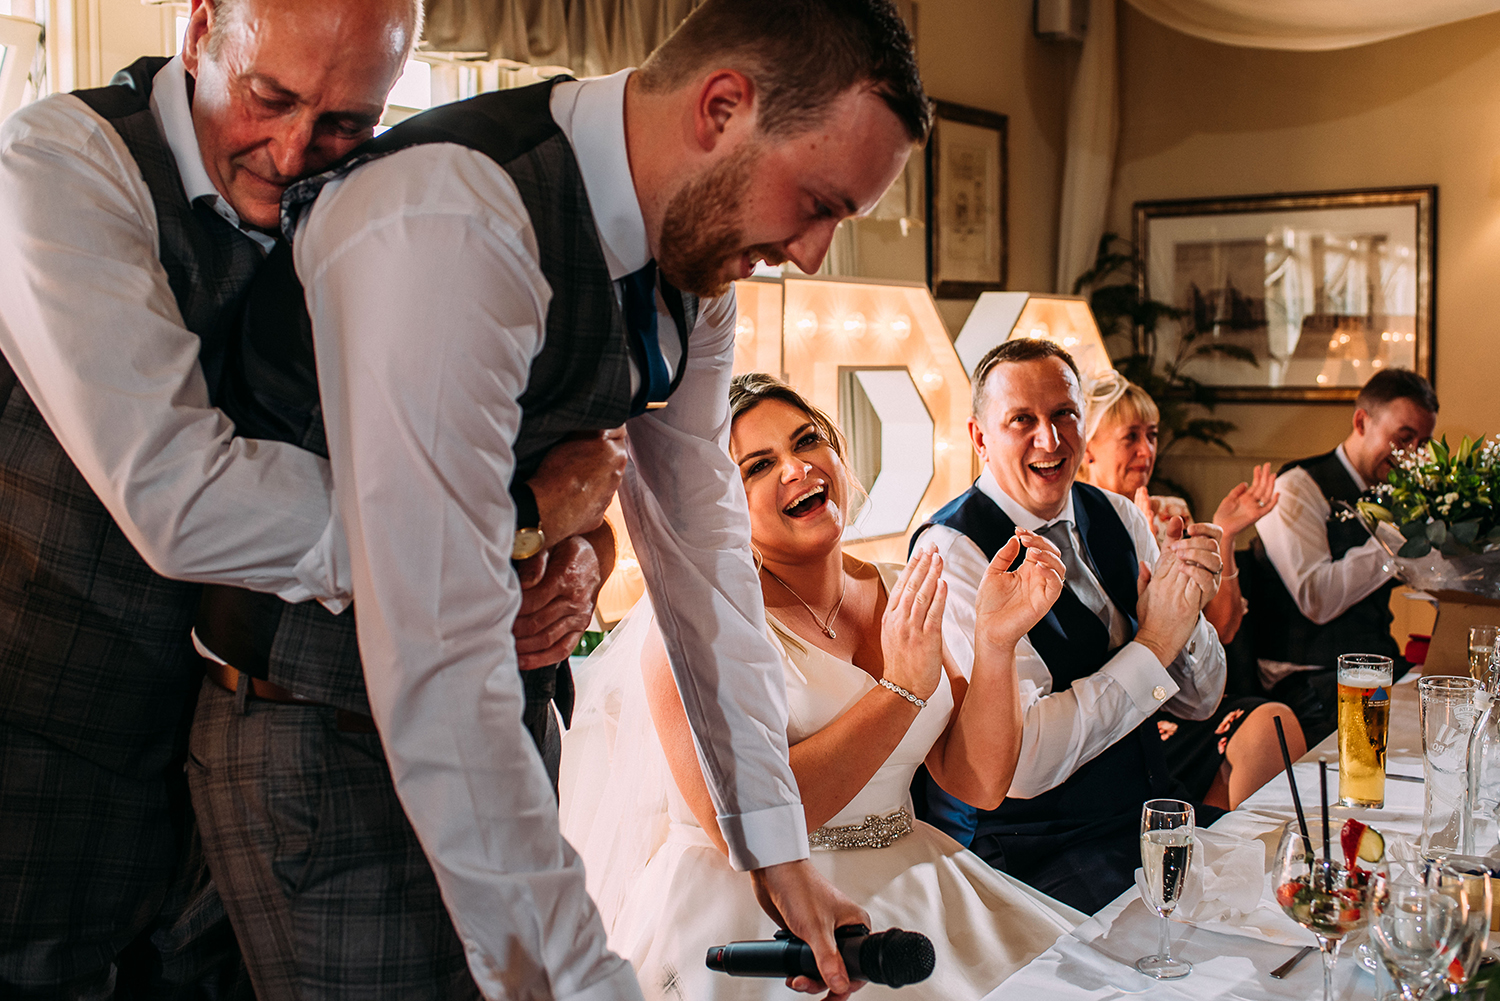 groom emotional during his speech so his father gives him a hug as he struggles